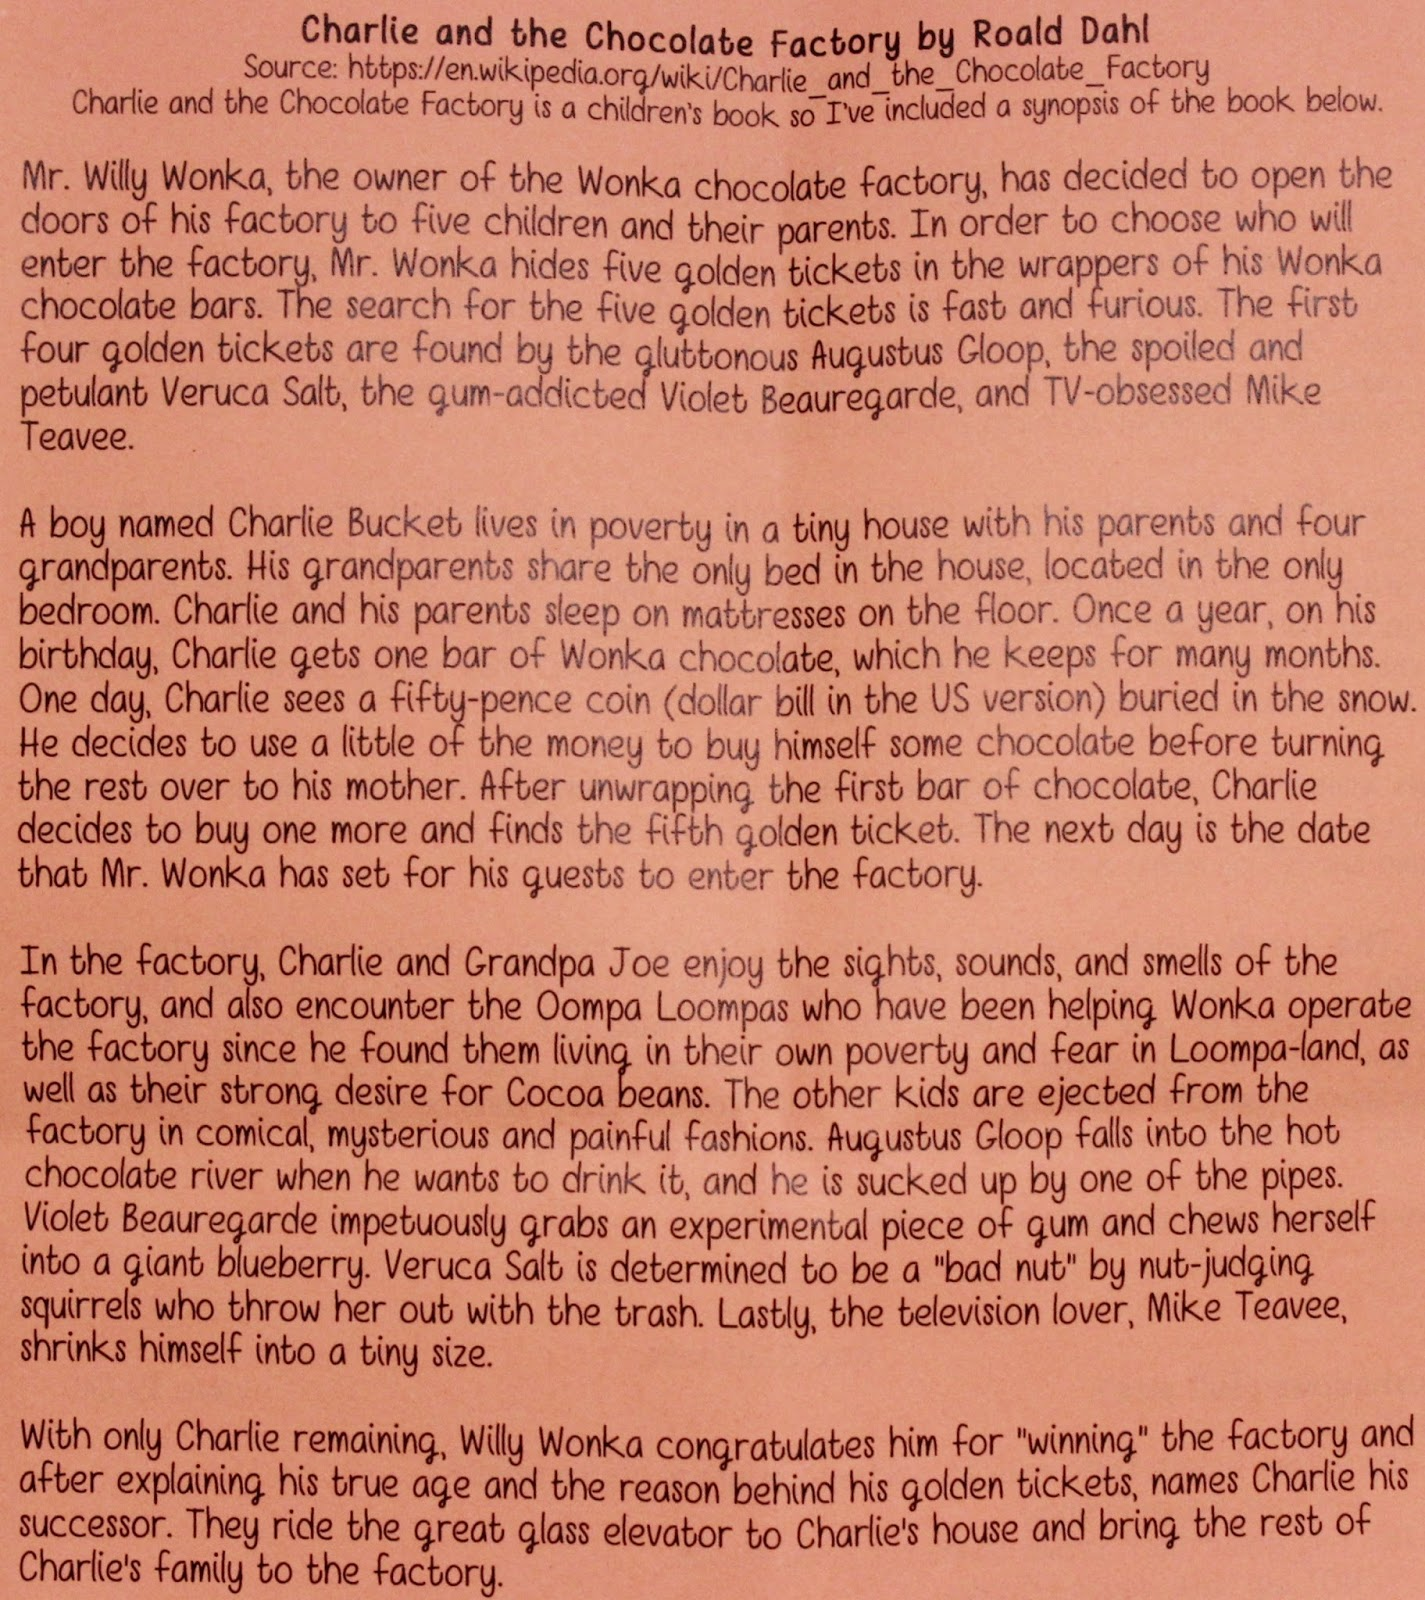 charlie and the chocolate factory book report